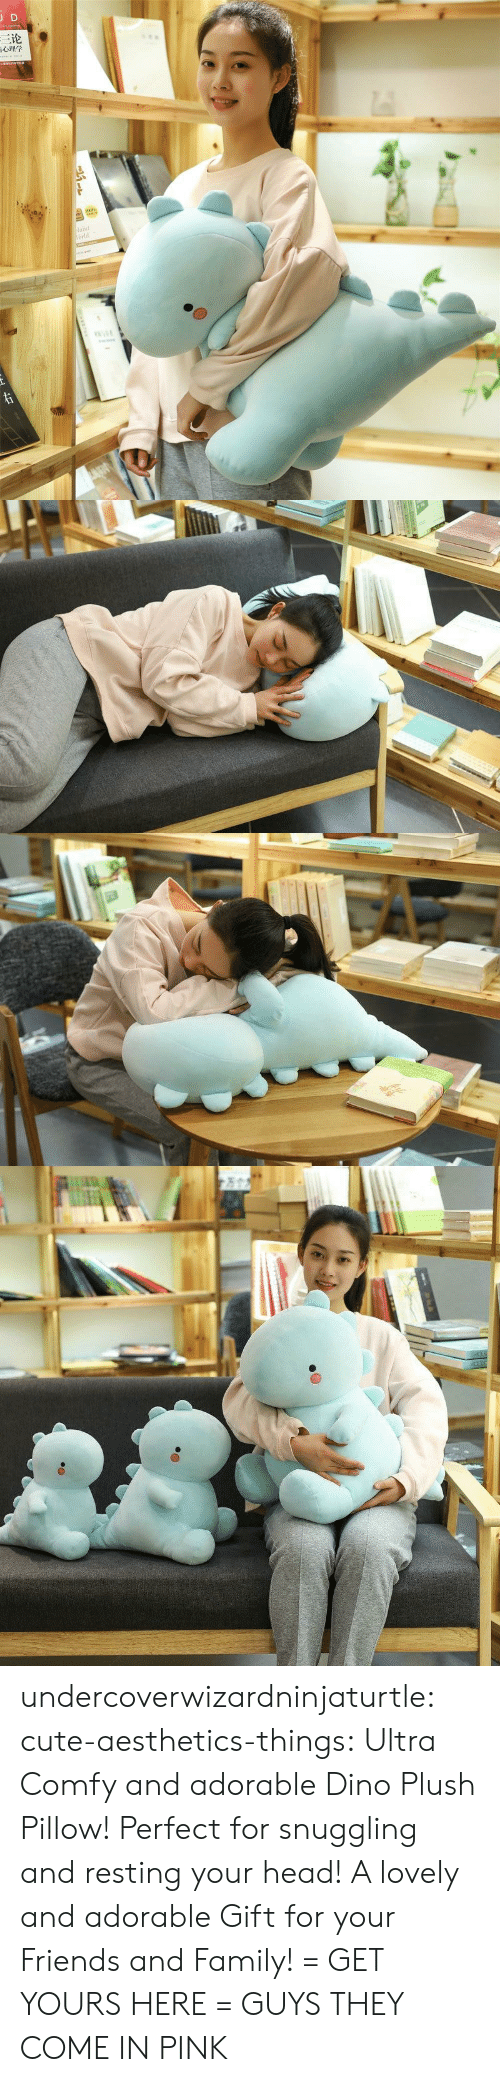 Cute, Family, and Friends: JD  三论  laint  orld  TNAR  ww.e undercoverwizardninjaturtle: cute-aesthetics-things:   Ultra Comfy and adorable Dino Plush Pillow! Perfect for snuggling and resting your head! A lovely and adorable Gift for your Friends and Family! = GET YOURS HERE =   GUYS THEY COME IN PINK